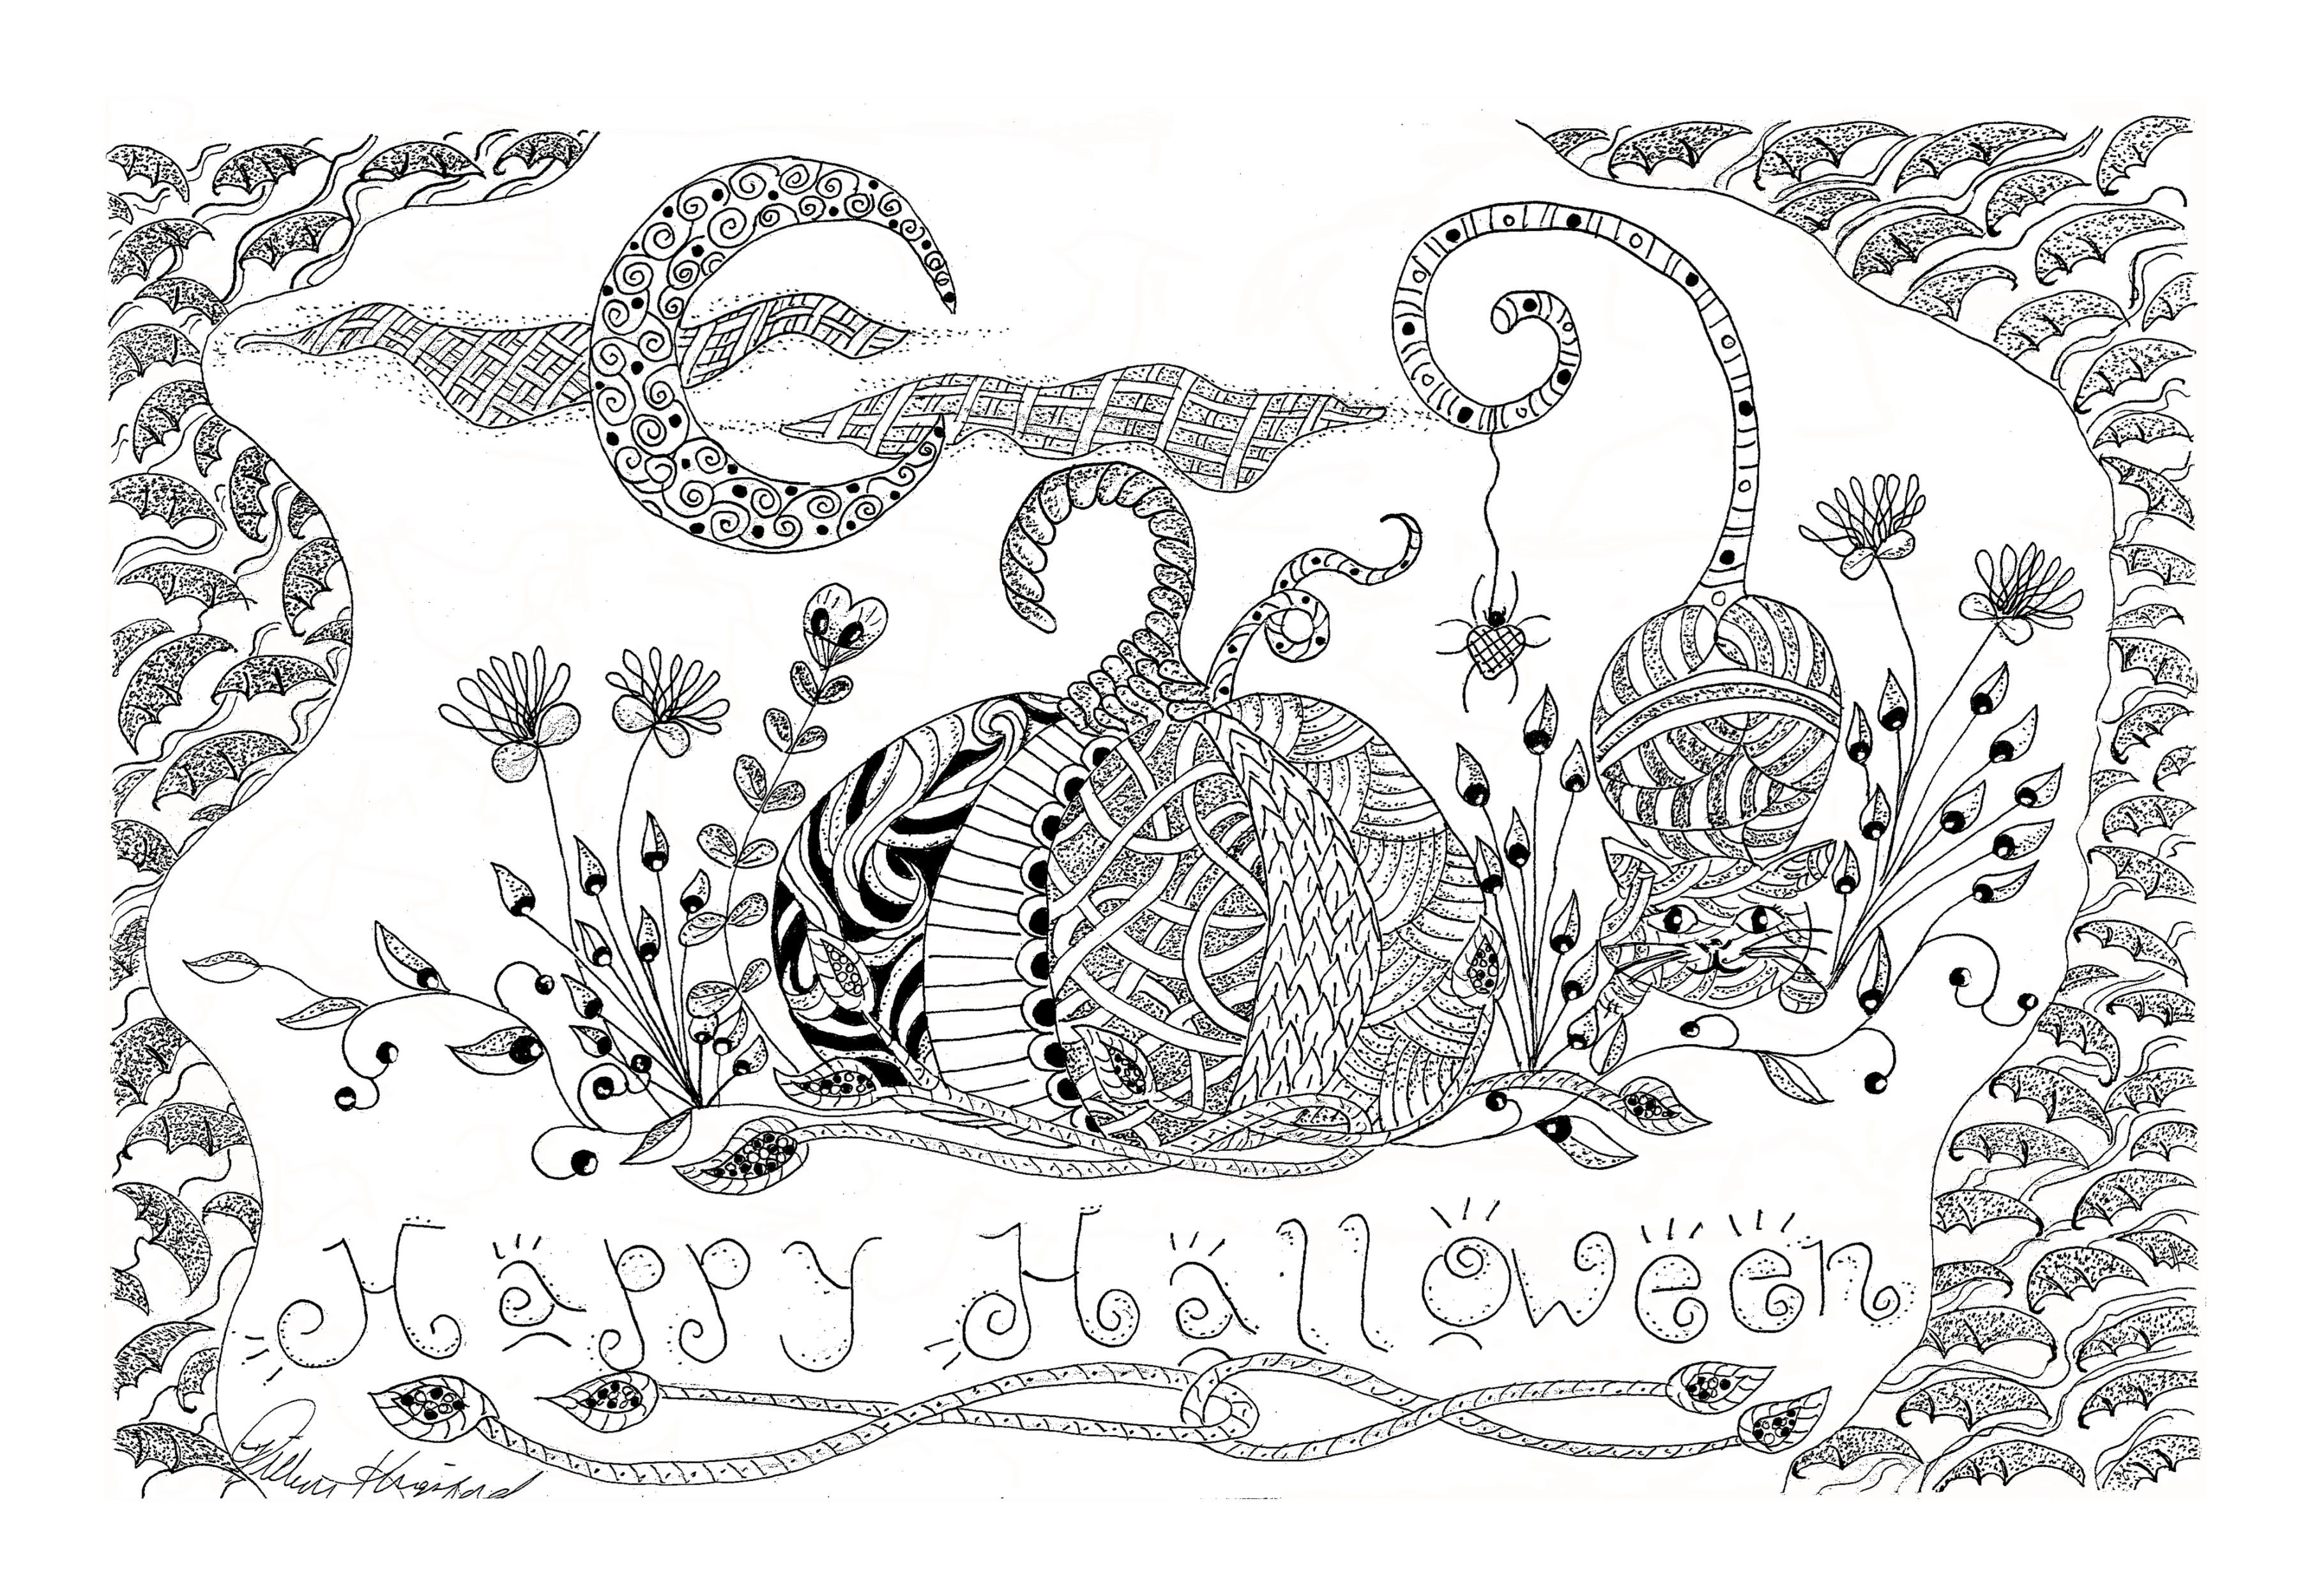 Halloween Tangle Doodles Zentangles Halloween Zentangle Halloween Art